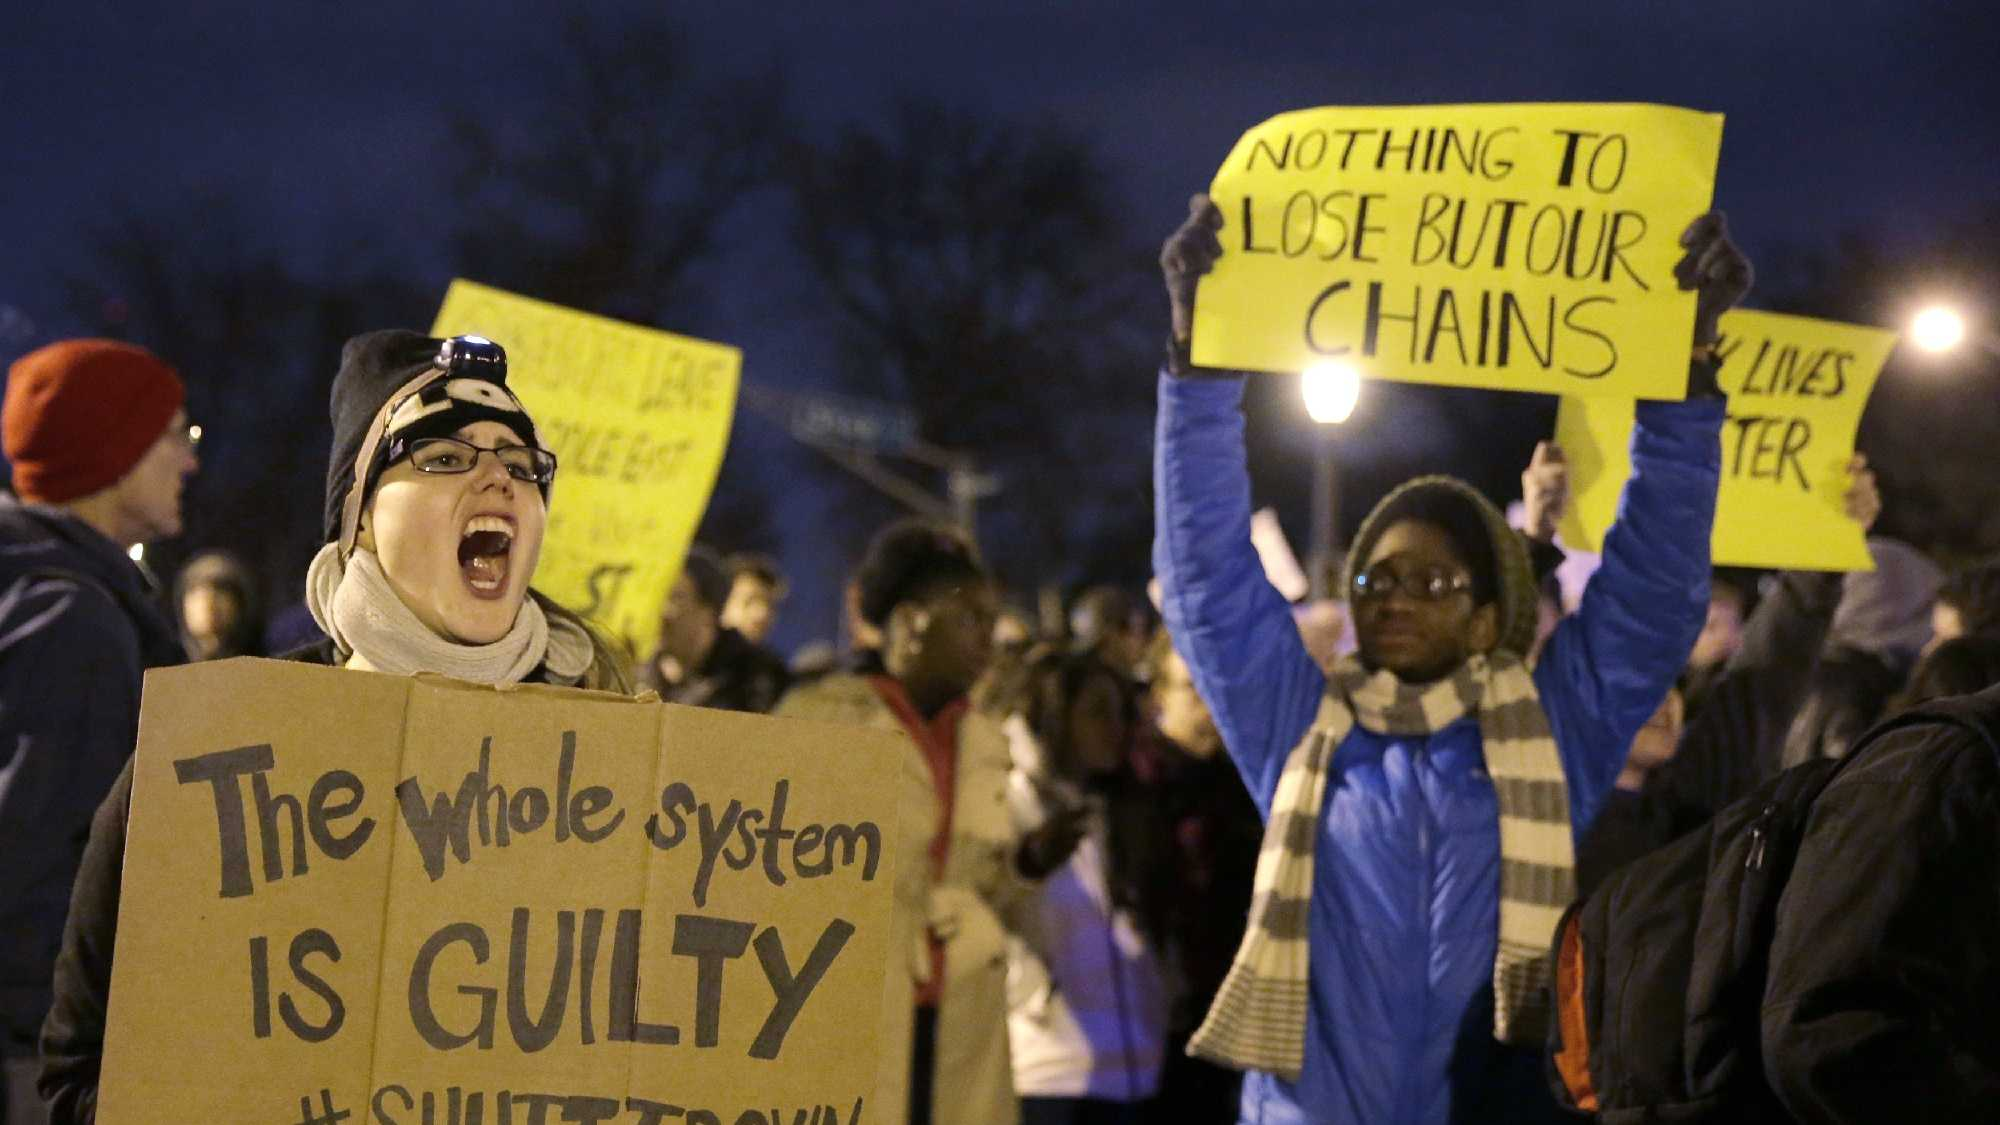 Protesters block streets after the announcement of the grand jury decision, Monday, Nov. 24, 2014, in St. Louis, Mo. A grand jury has decided not to indict Ferguson police officer Darren Wilson in the shooting death of 18-year-old Michael Brown.